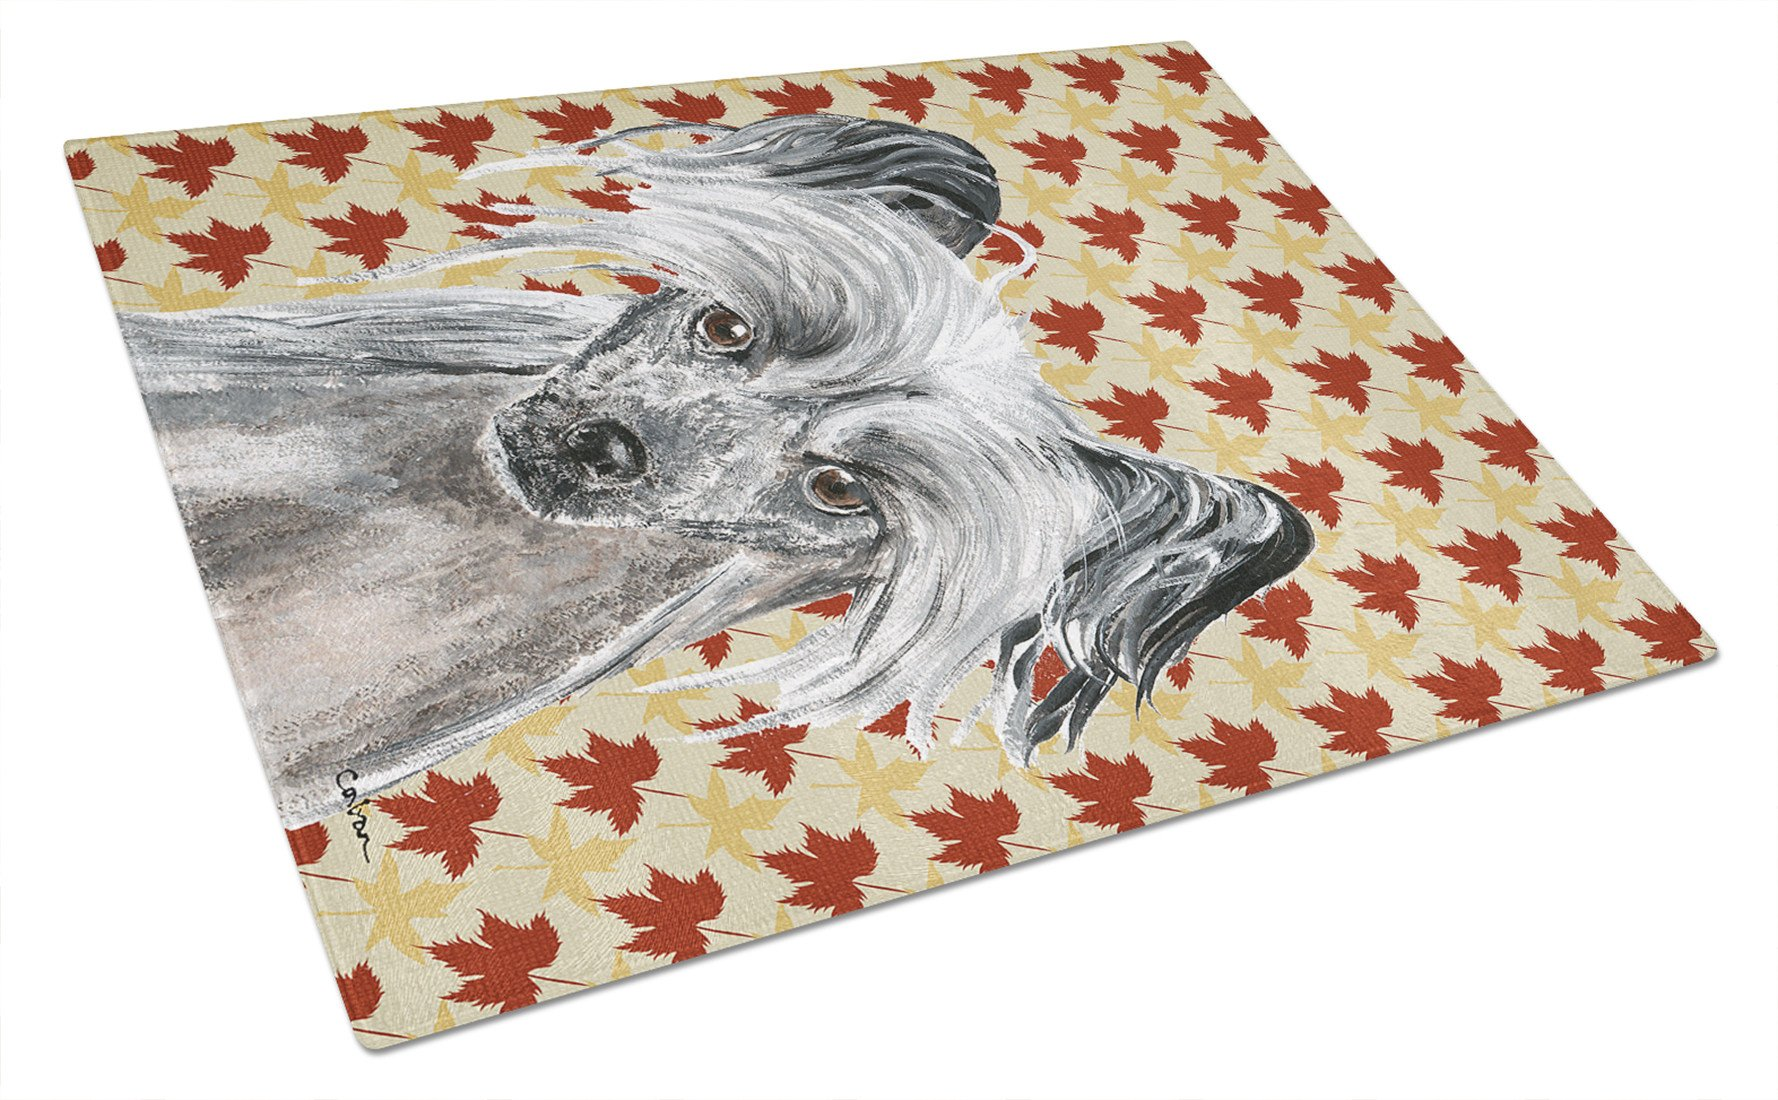 Chinese Crested Fall Leaves Glass Cutting Board Large by Caroline's Treasures